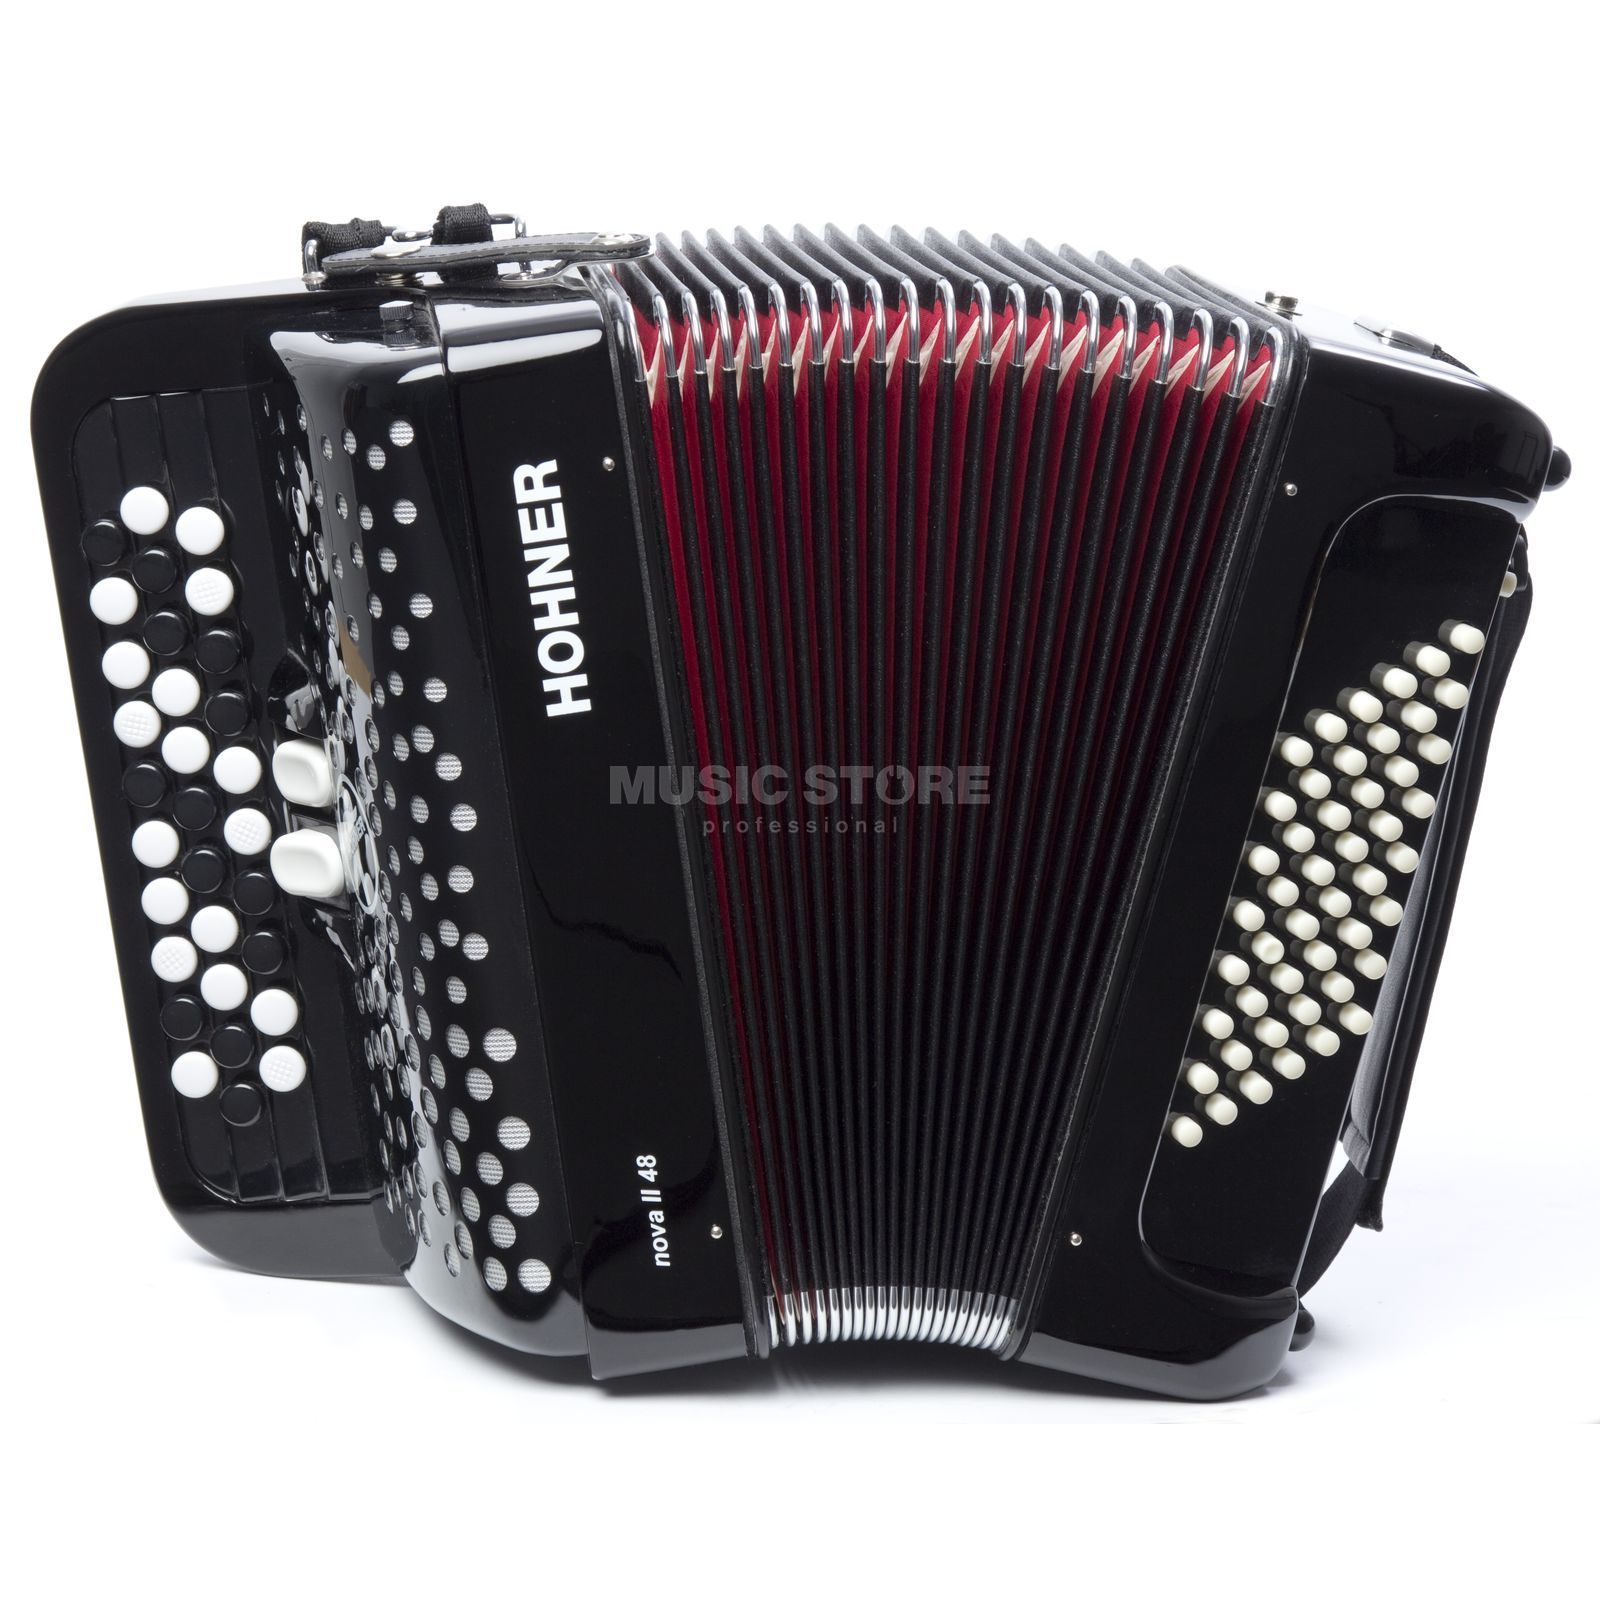 Hohner Nova II 48 Button-Accordion B-System, Black Produktbillede